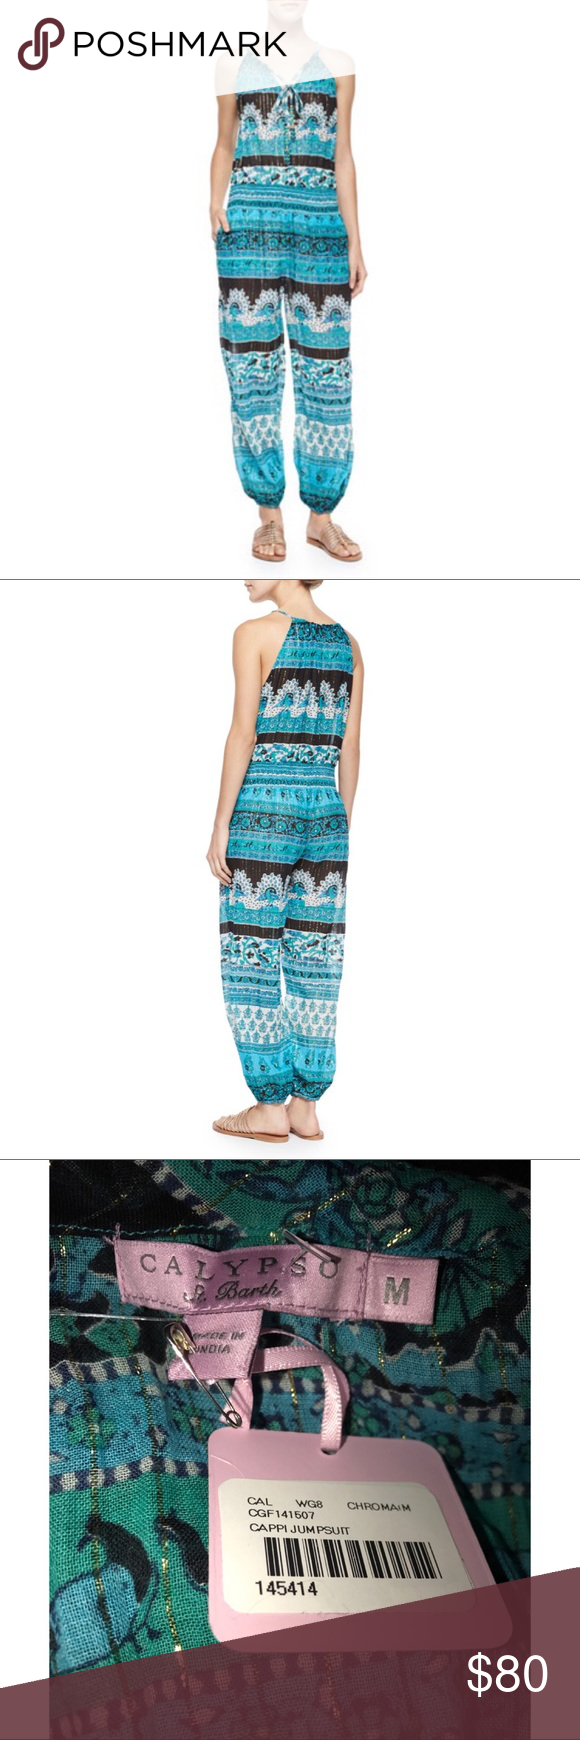 """Calypso St Barth $80 OBO NWT Multi Cappi Jumpsuit •Calypso St. Barth """"Cappi"""" jumpsuit in multipattern. •V neckline with tie detail. •Spaghetti straps. •Banded waist. •Slit pockets at hips. •Harem pants. •Hem hits ankle. •Cotton. •Imported. Calypso St. Barth Pants Jumpsuits & Rompers"""